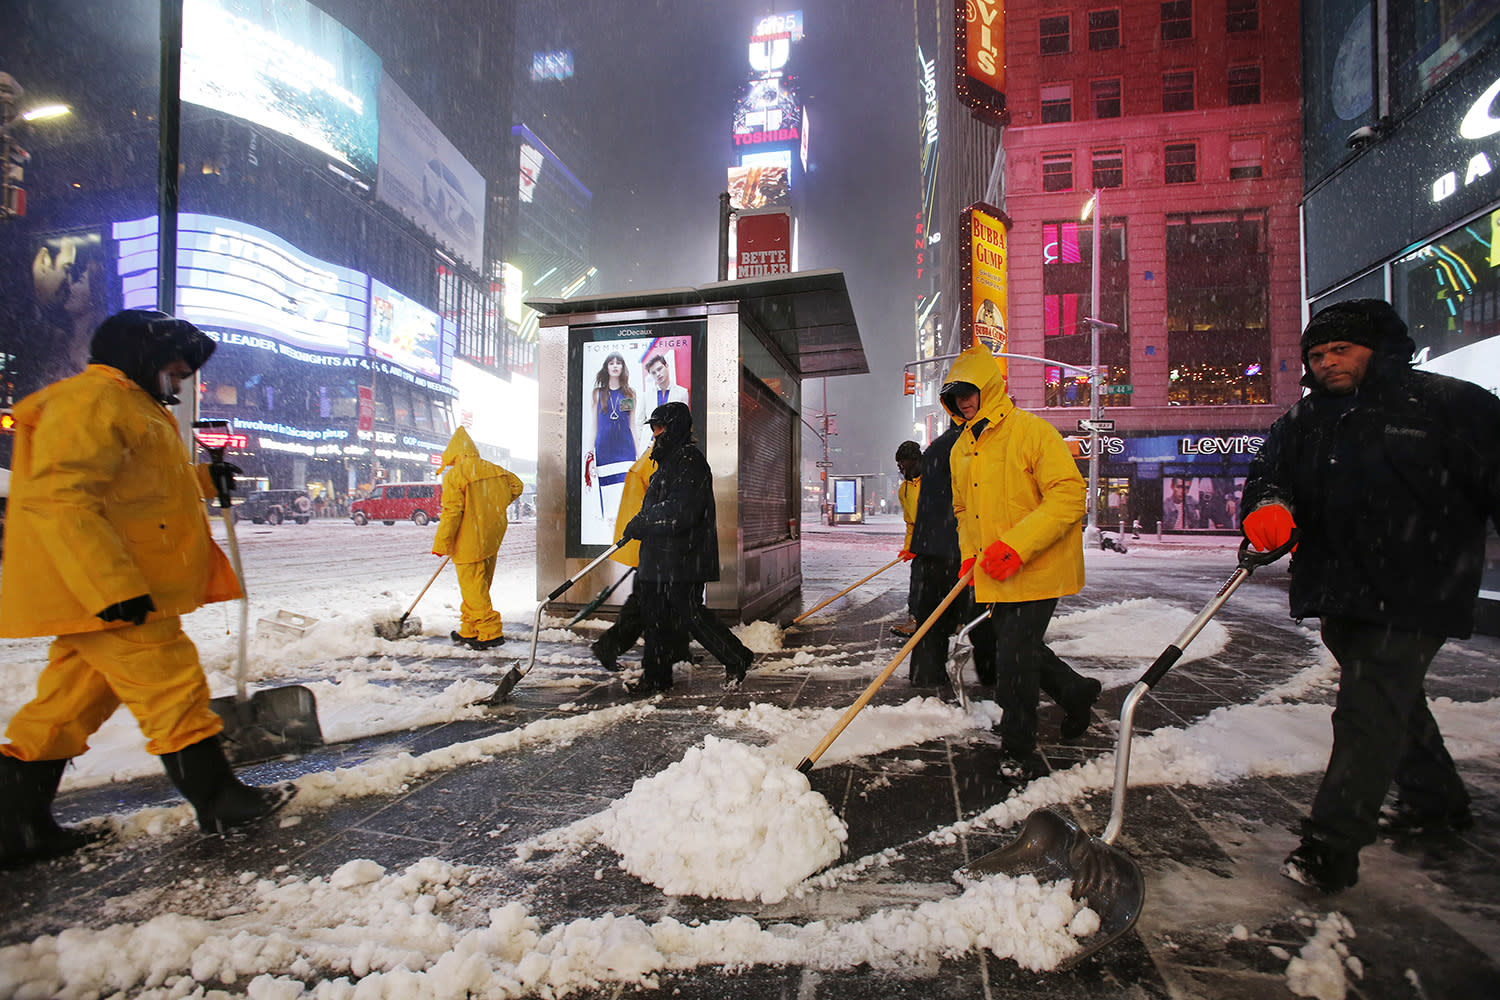 <p>A crew of snow shovelers work as a snowstorm sweeps through Times Square, Tuesday, March 14, 2017, in New York. (Mark Lennihan/AP) </p>